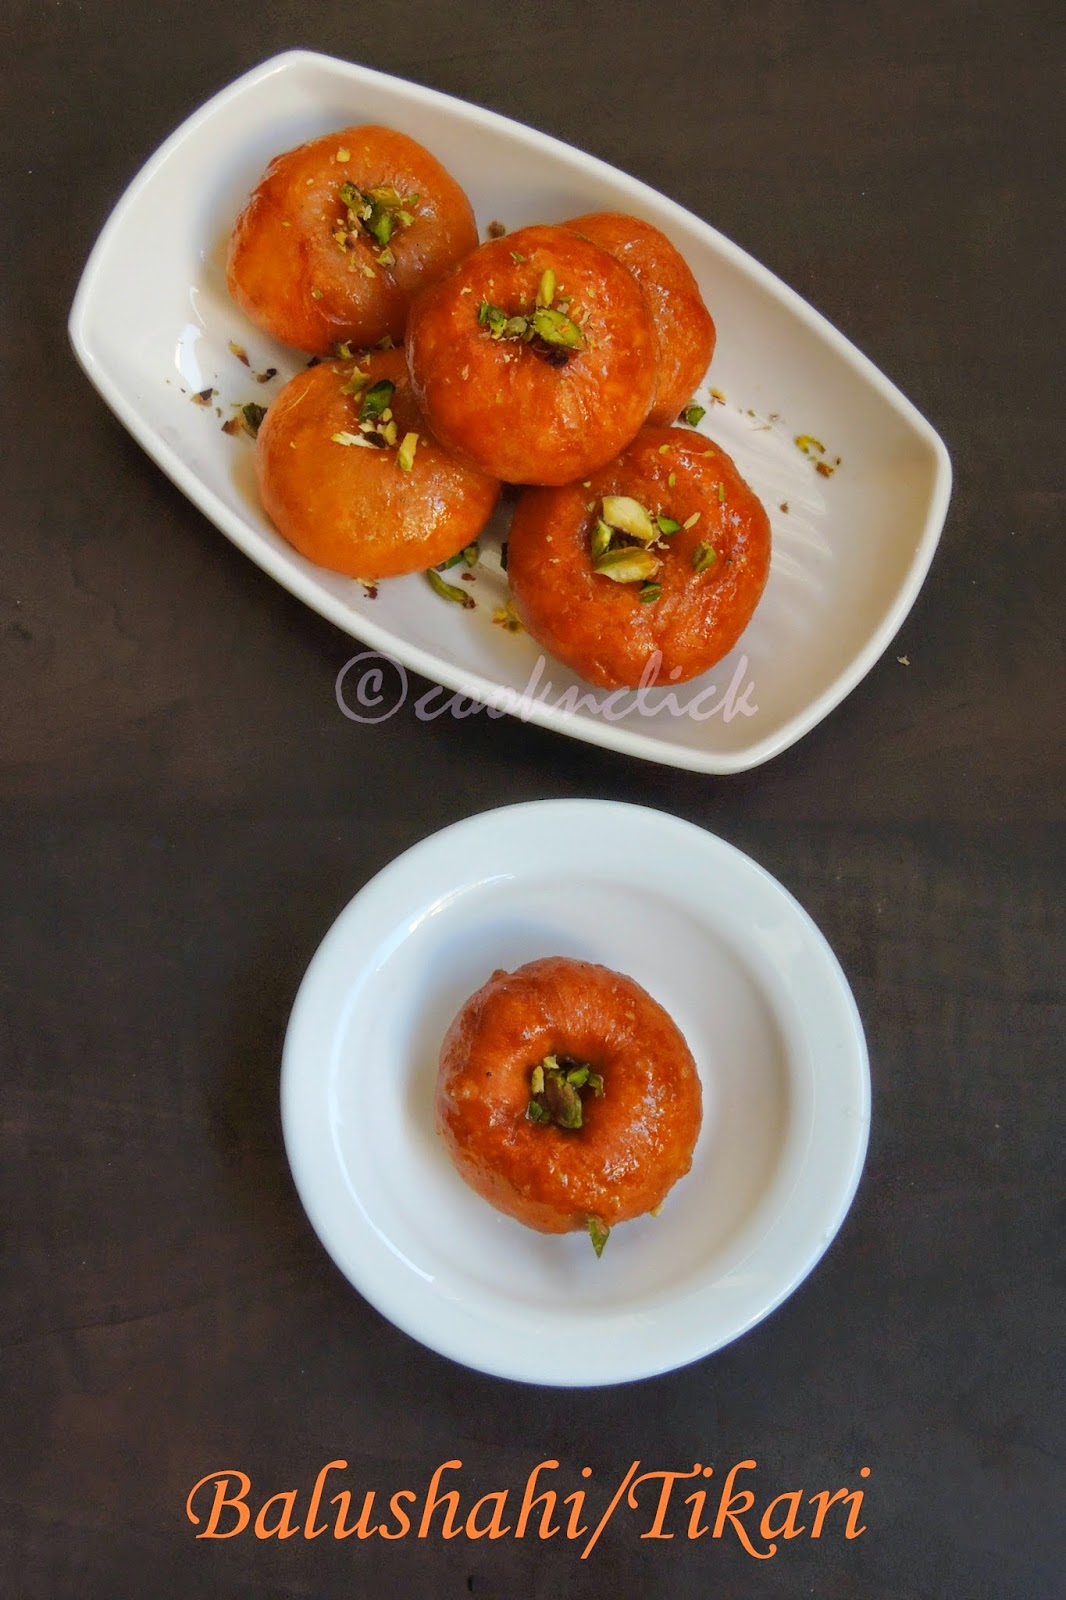 Balushahi, North Indian Badusha, Tikari, Indian Doughnuts